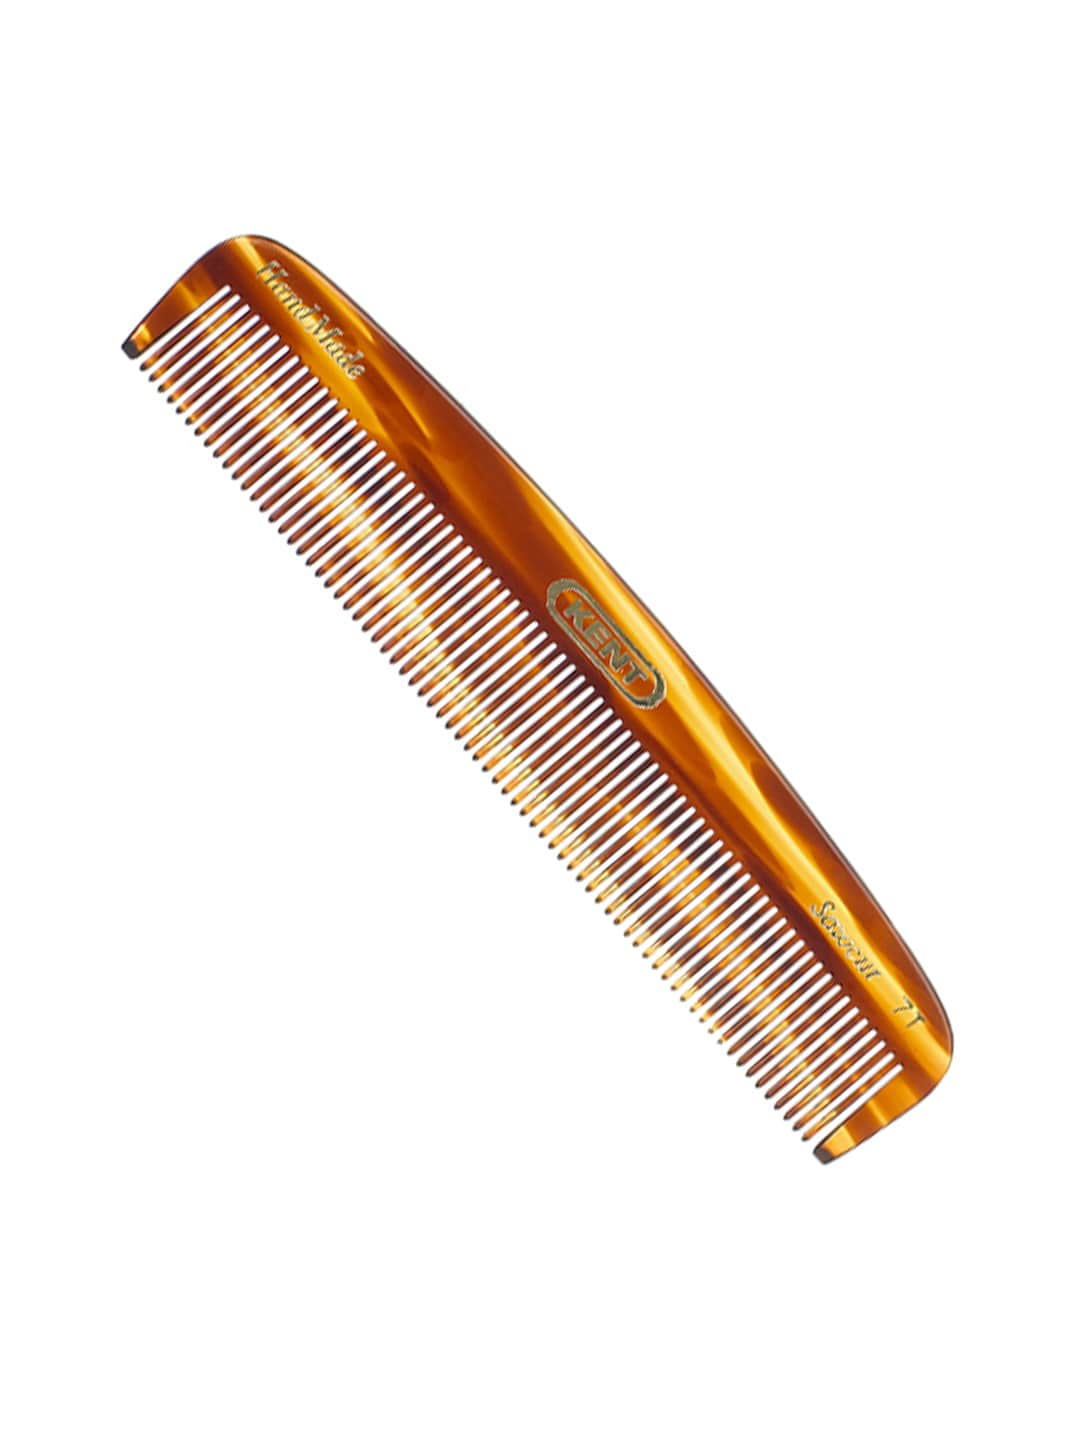 Kent Unisex Brown Handcrafted Comb 7T image